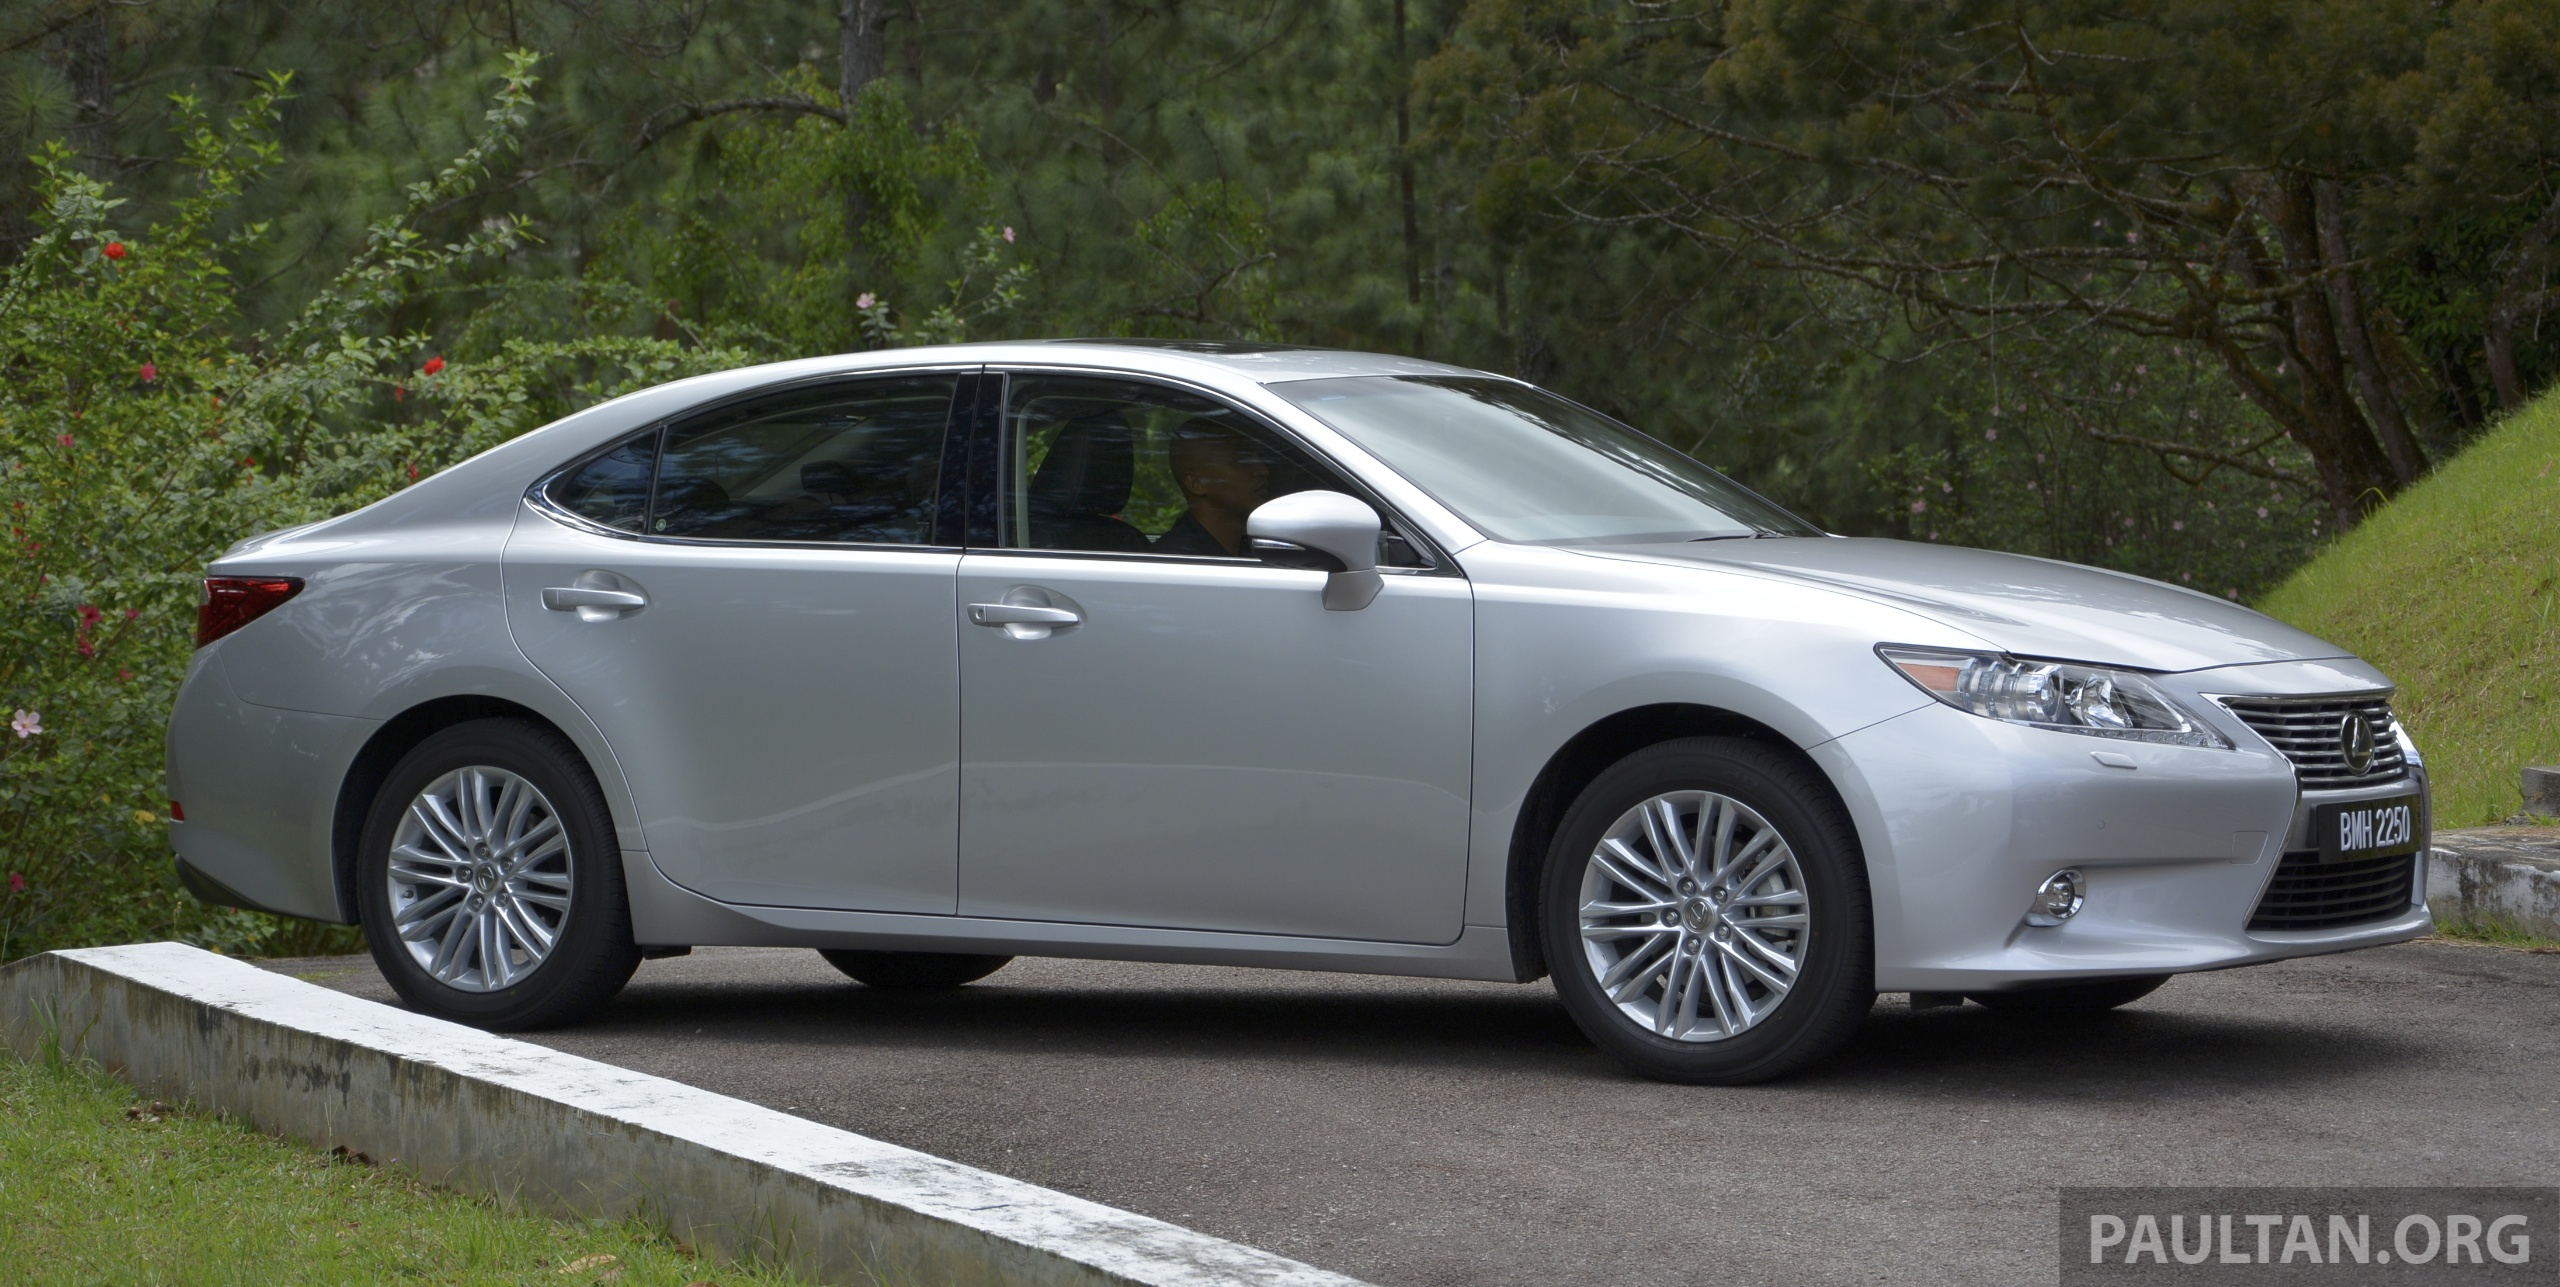 Malaysian Review 2013 Lexus Es250 And Es300h Sampled